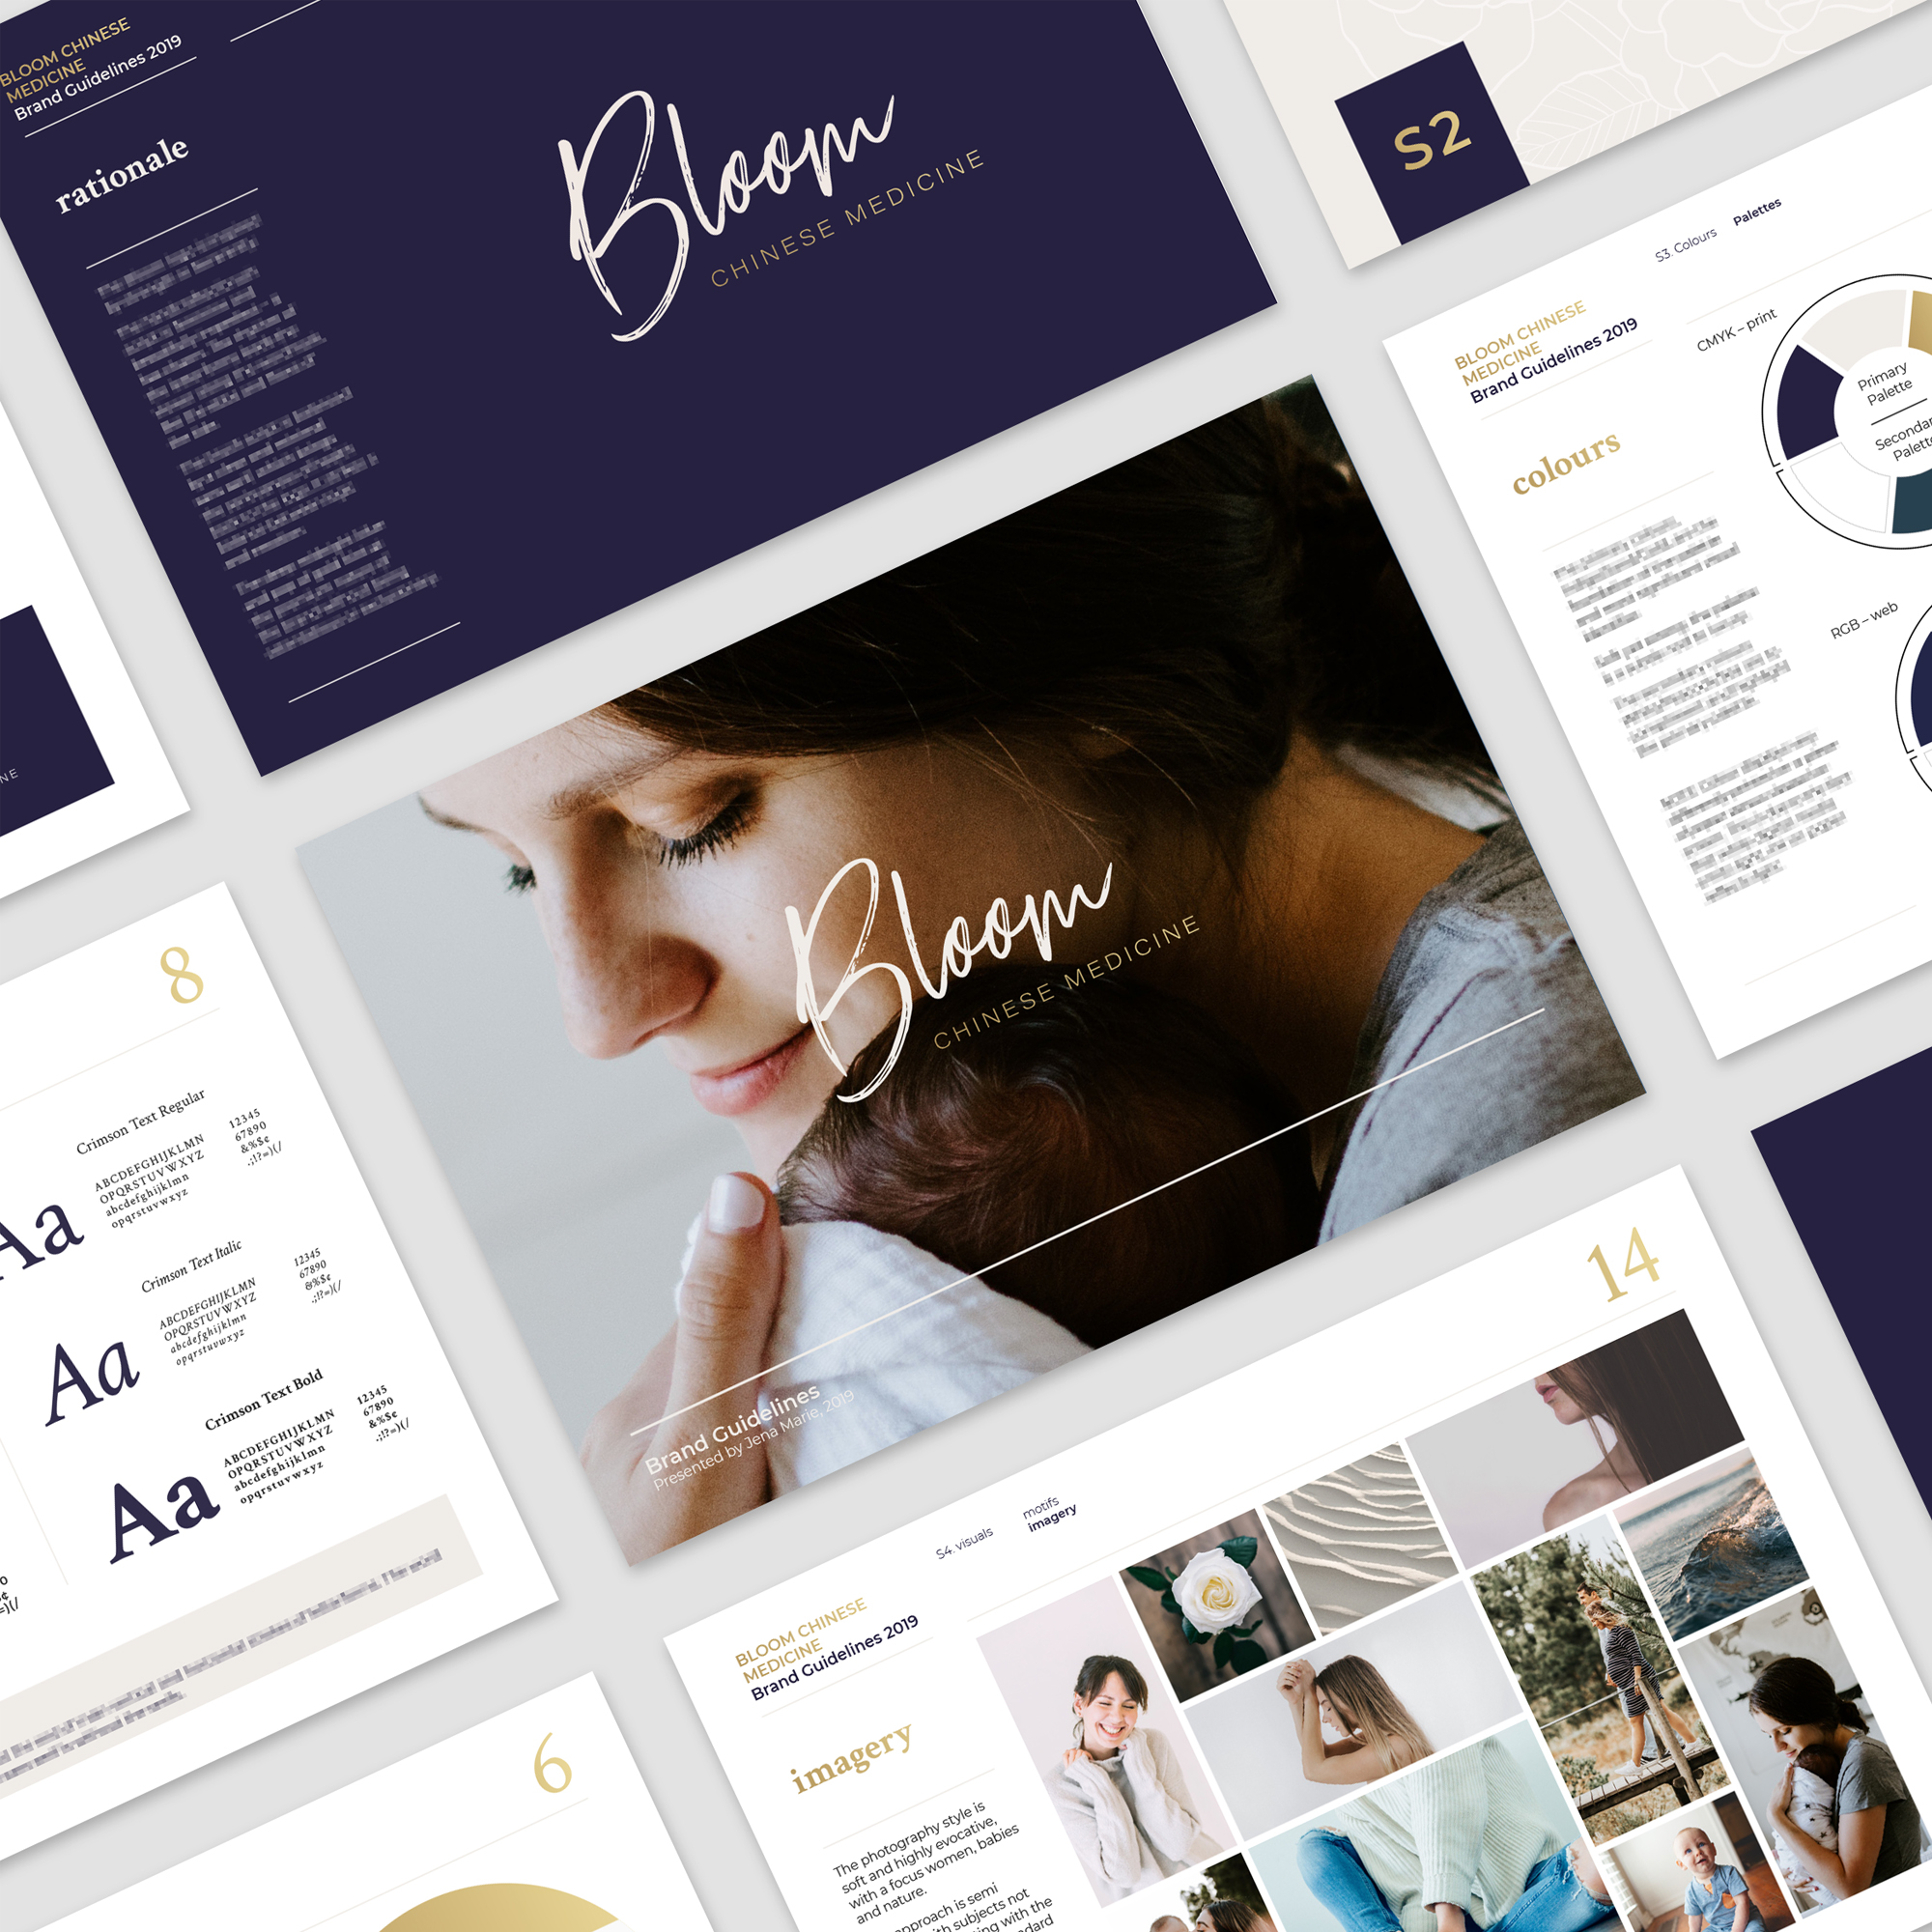 Interested to know more about what the branding process entails? - Check out this case study for Bloom Chinese Medicine